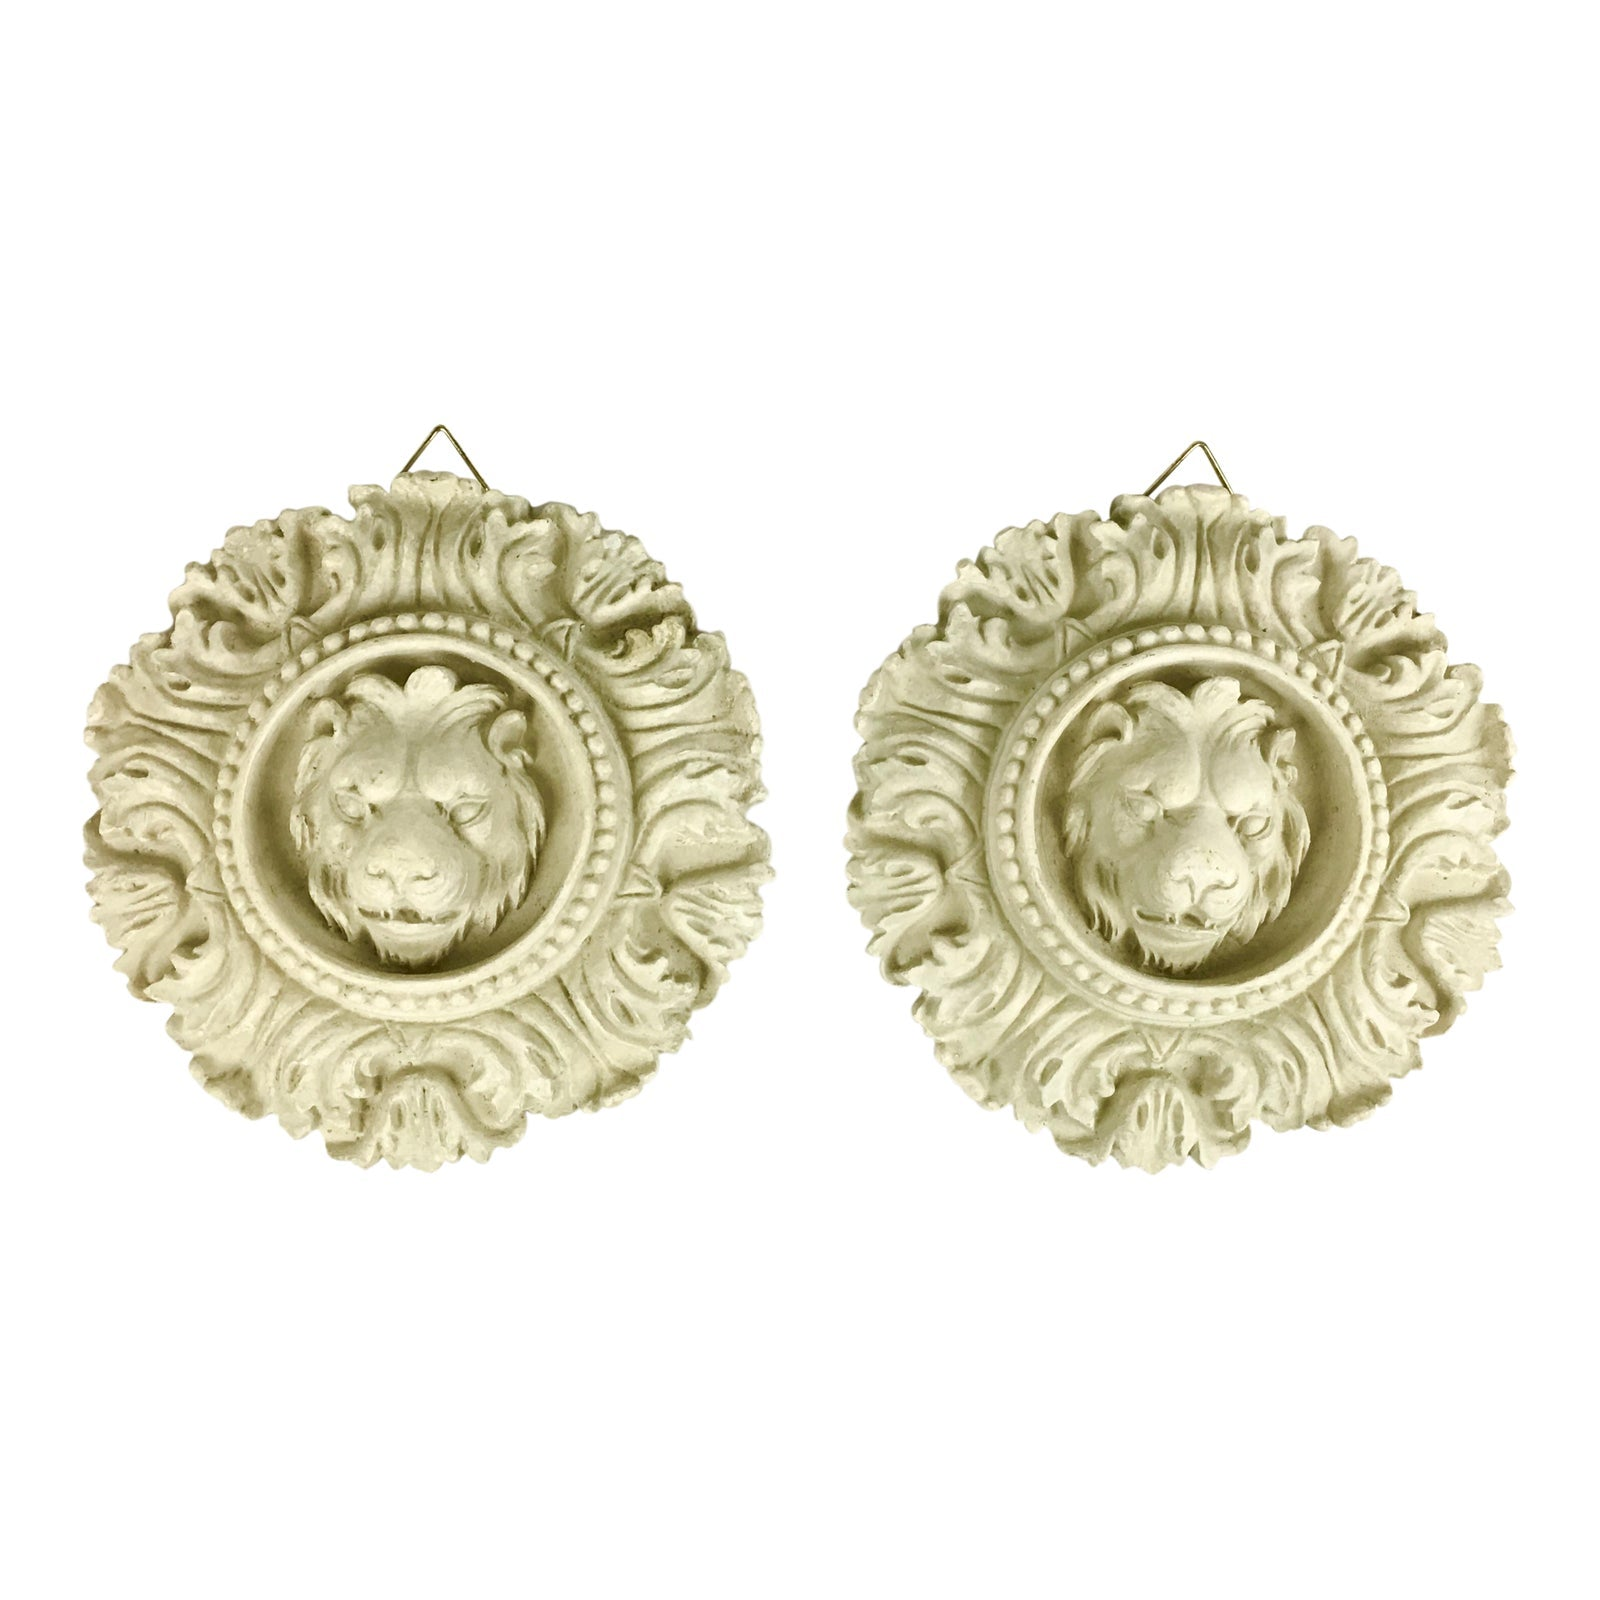 Rococo Lion Wall Accents - a Pair